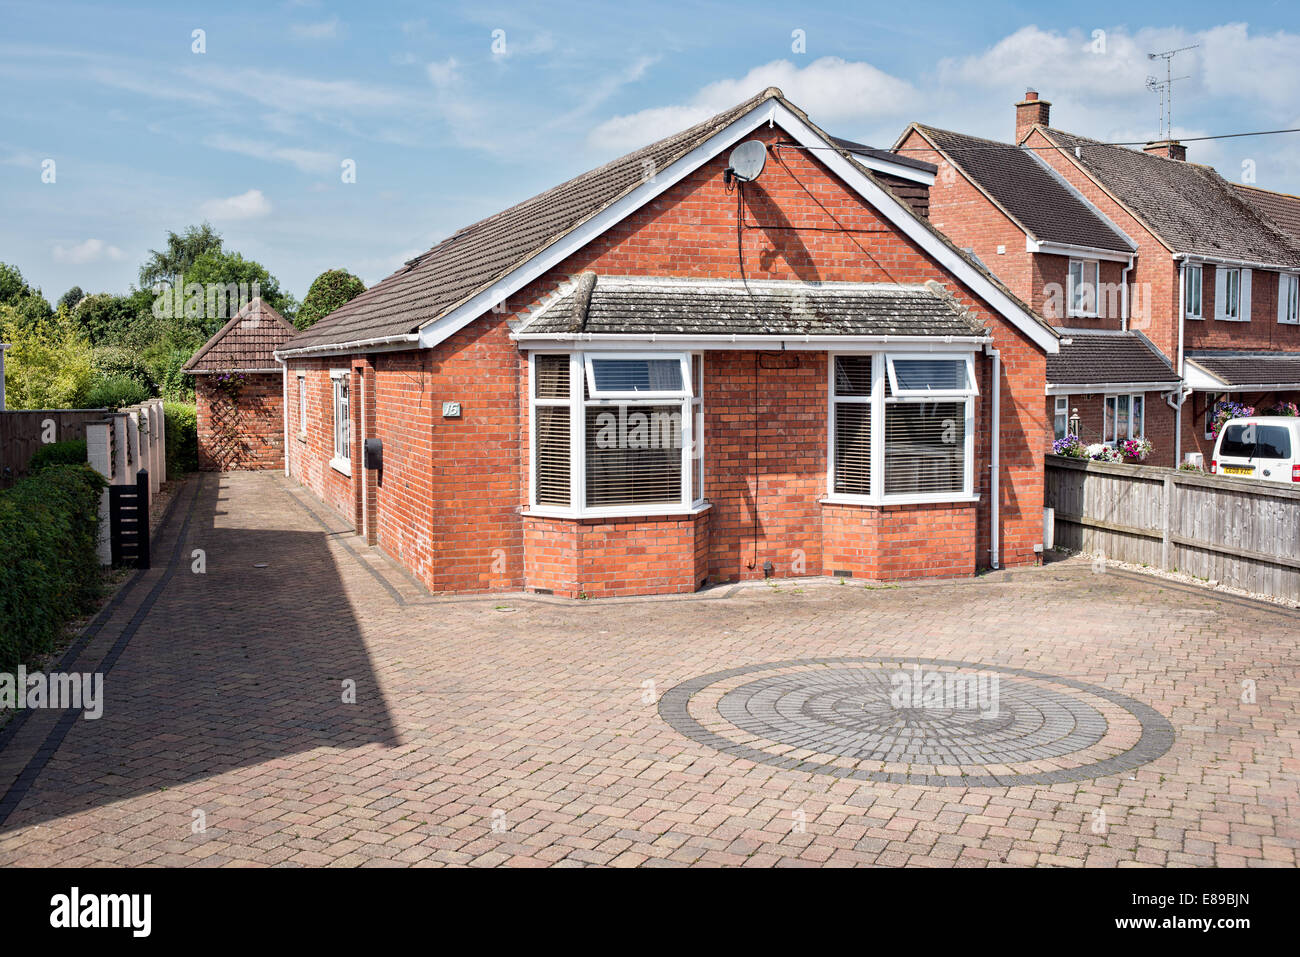 A renovated & extended, double glazed, red brick bungalow with block paved forecourt  on a sunny day, Wiltshire, - Stock Image